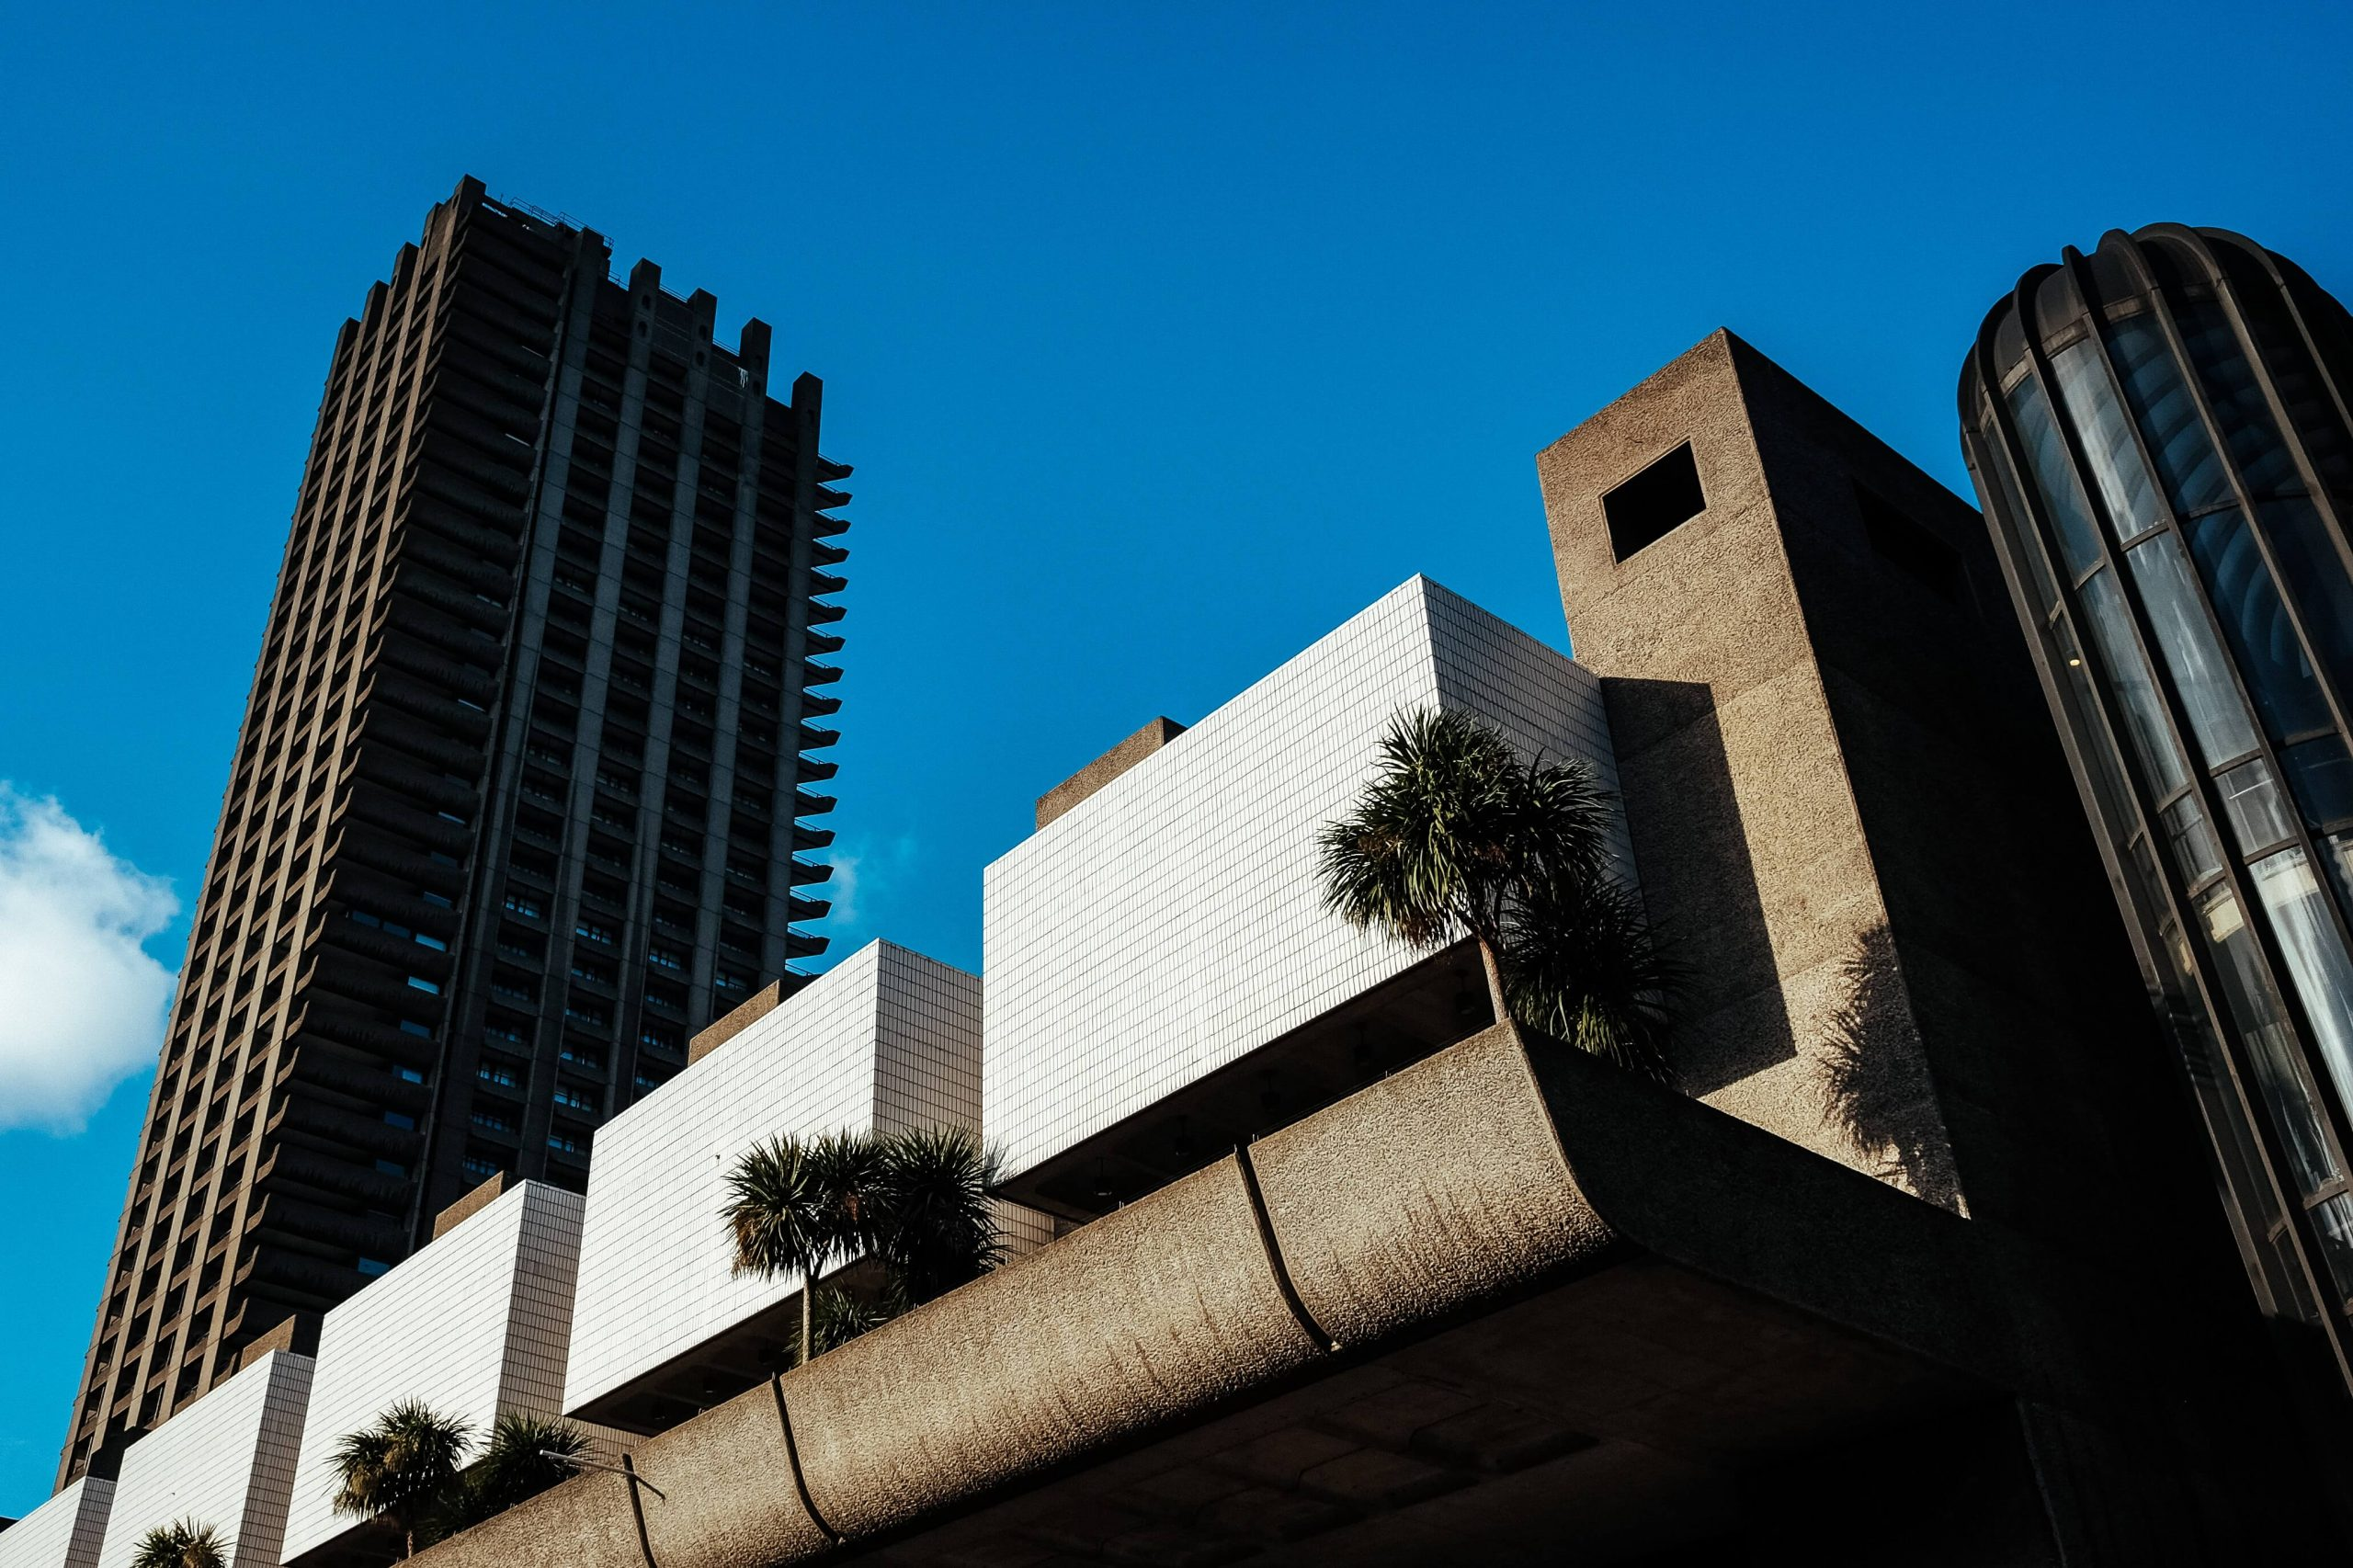 An image of part of the Barbican Centre, London.